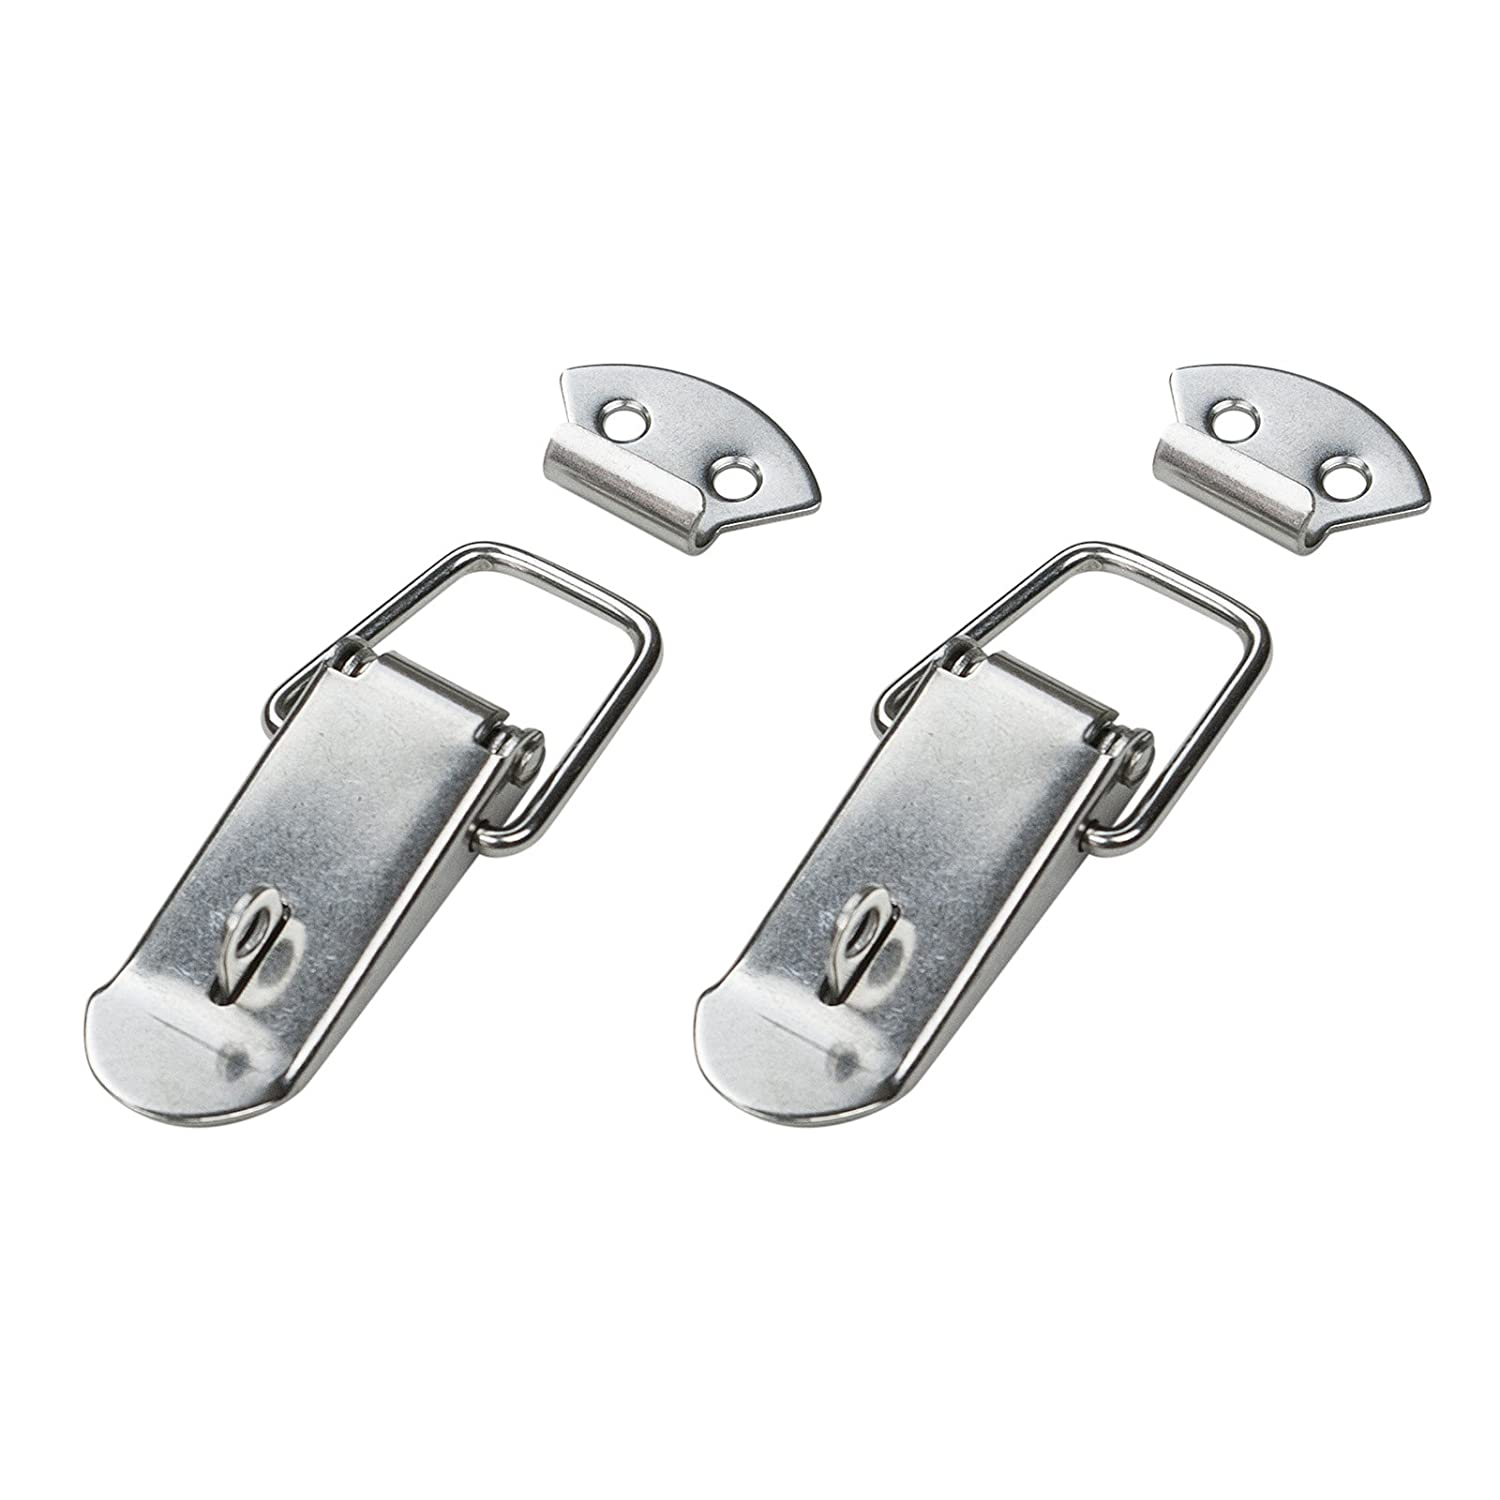 POWERTEC 21101 Stainless Steel Spring Loaded Chest Latch with Catch Plate 2-Pack 5-Inch